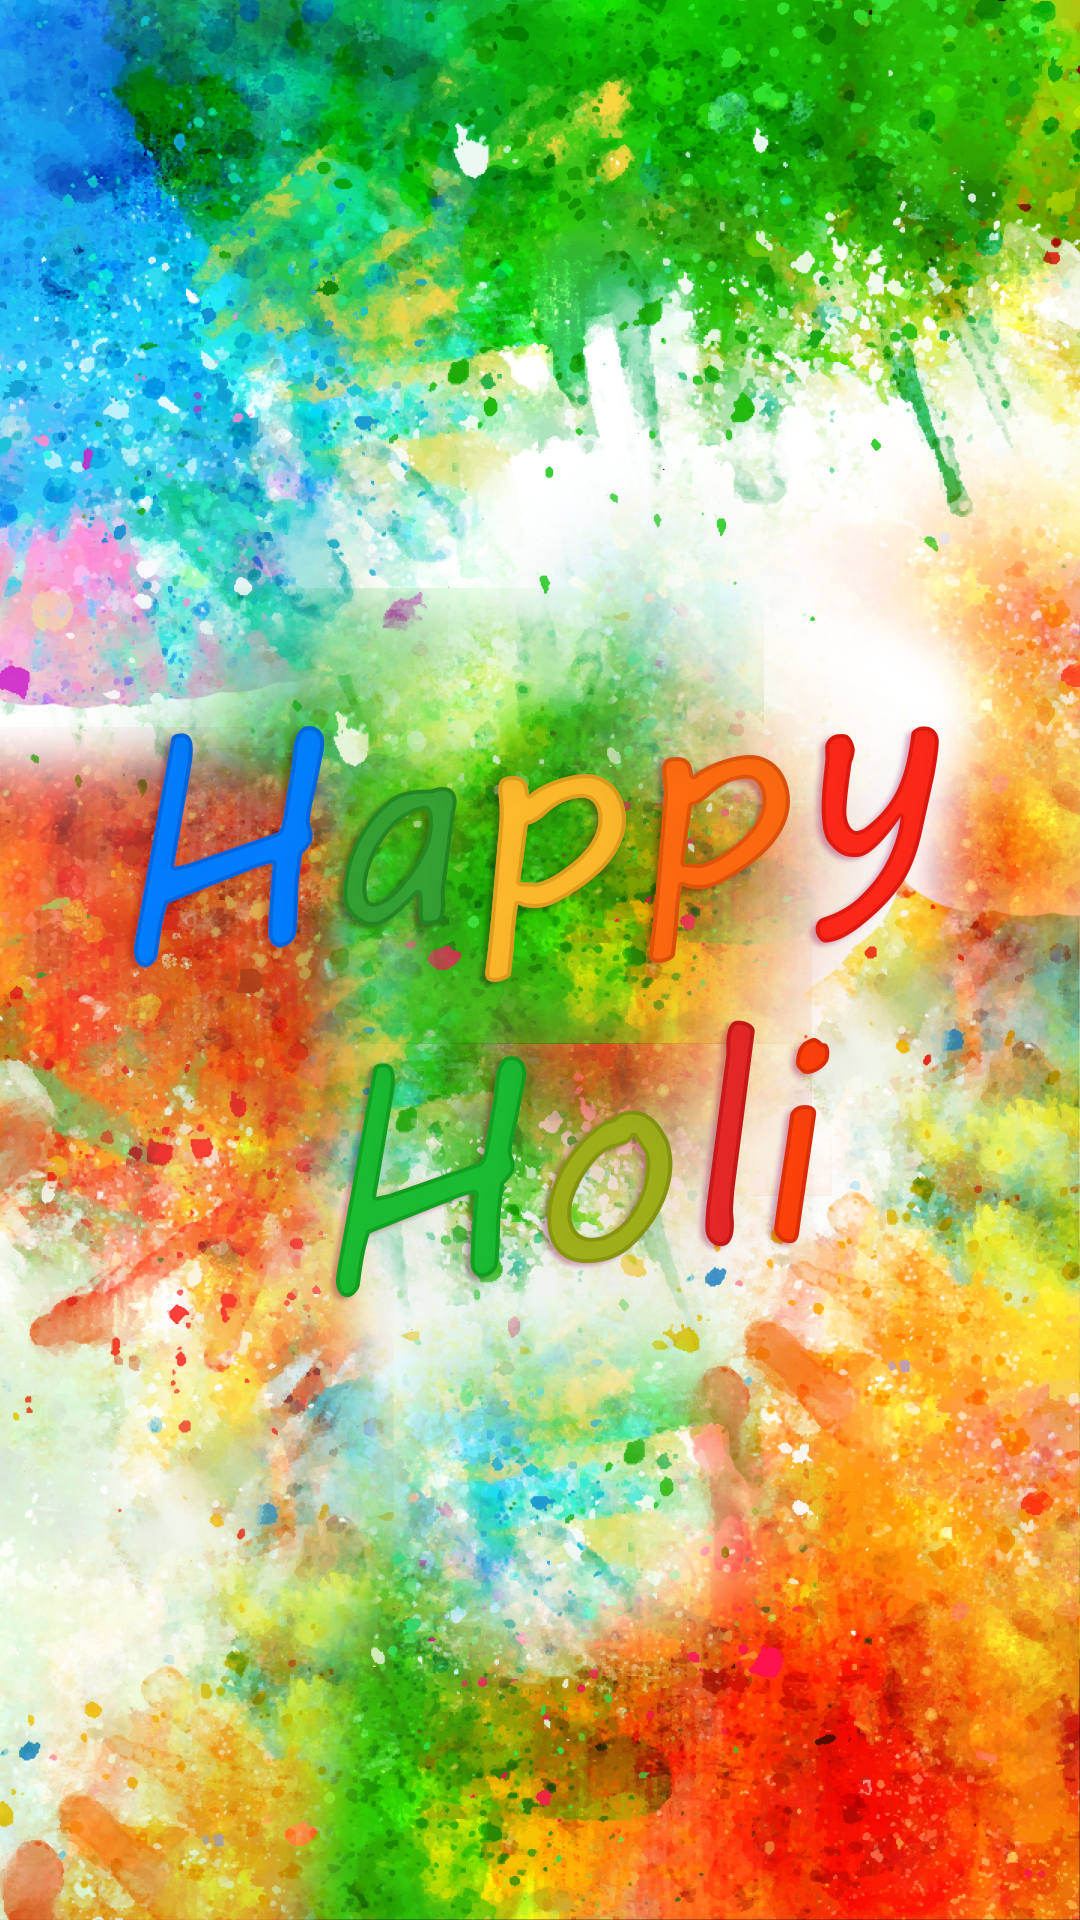 Happy Holi Phone Wallpaper